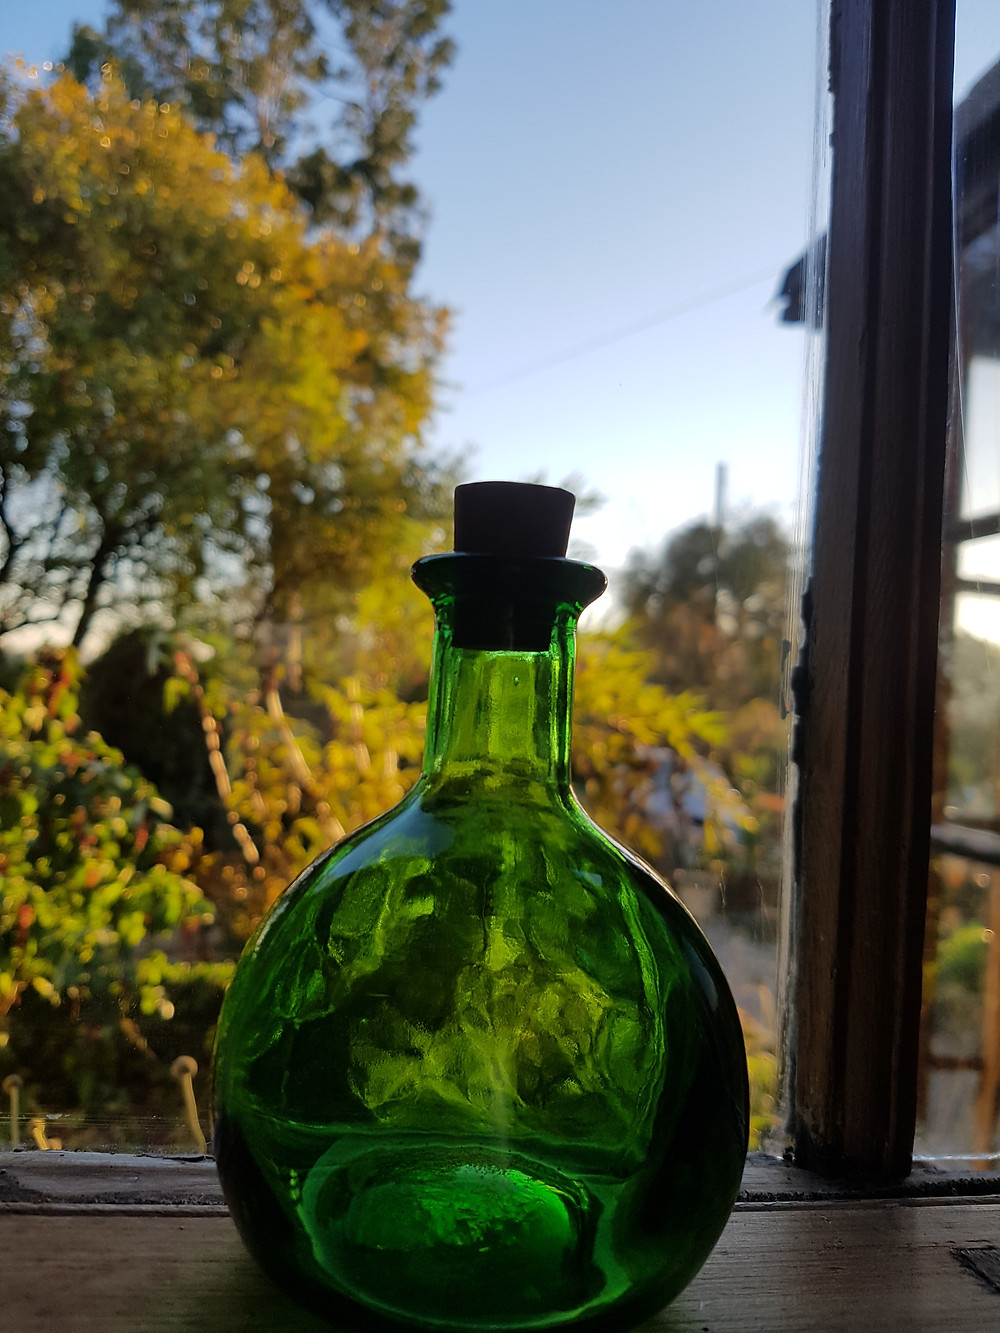 This bottle lives in my mentor's blending room. It brings me a lot of joy to see the light shine through it.